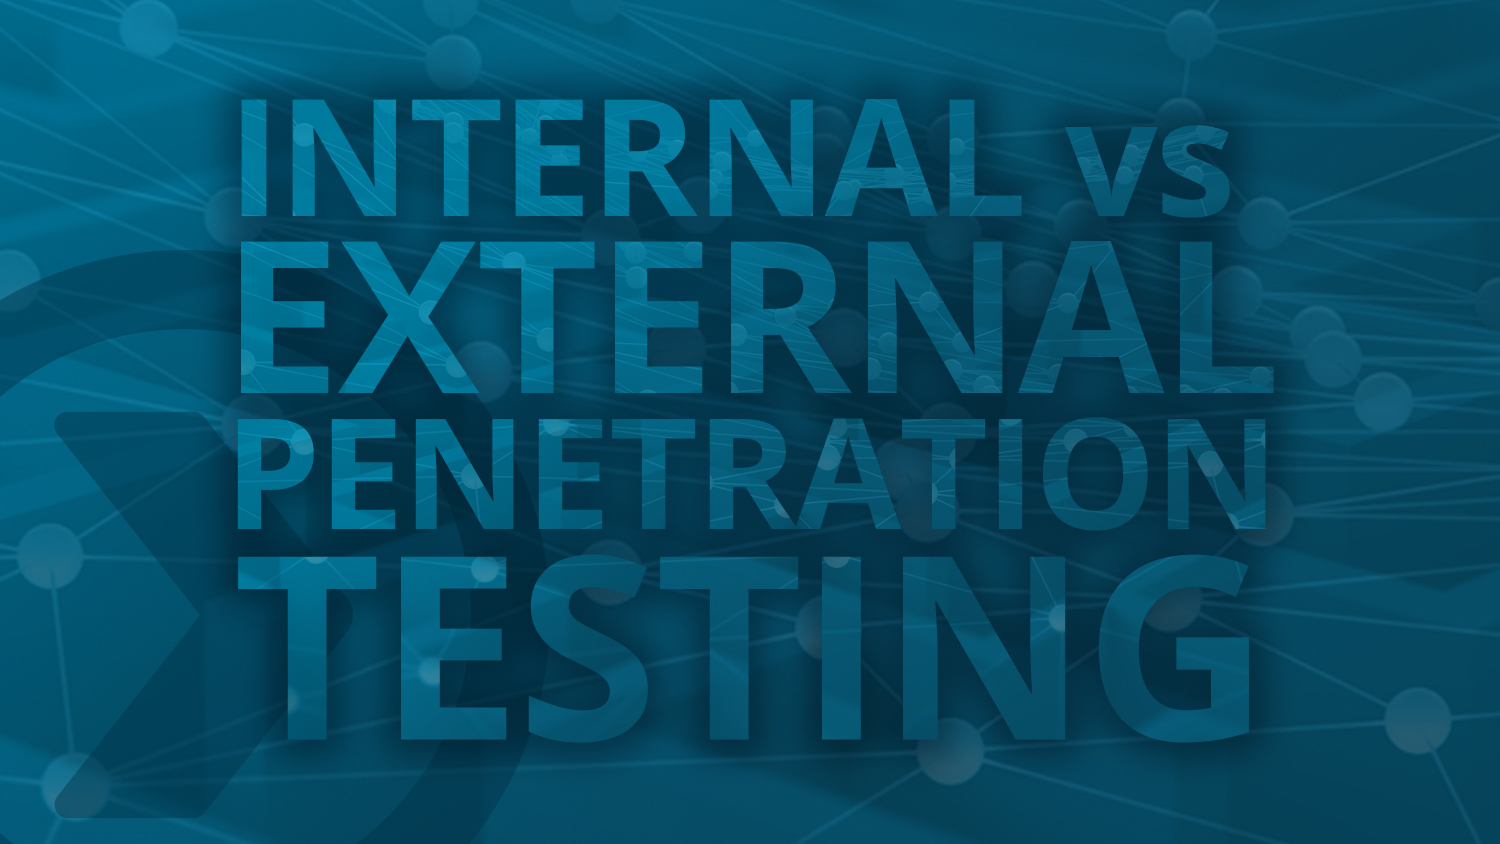 Internal and External Penetration Testing